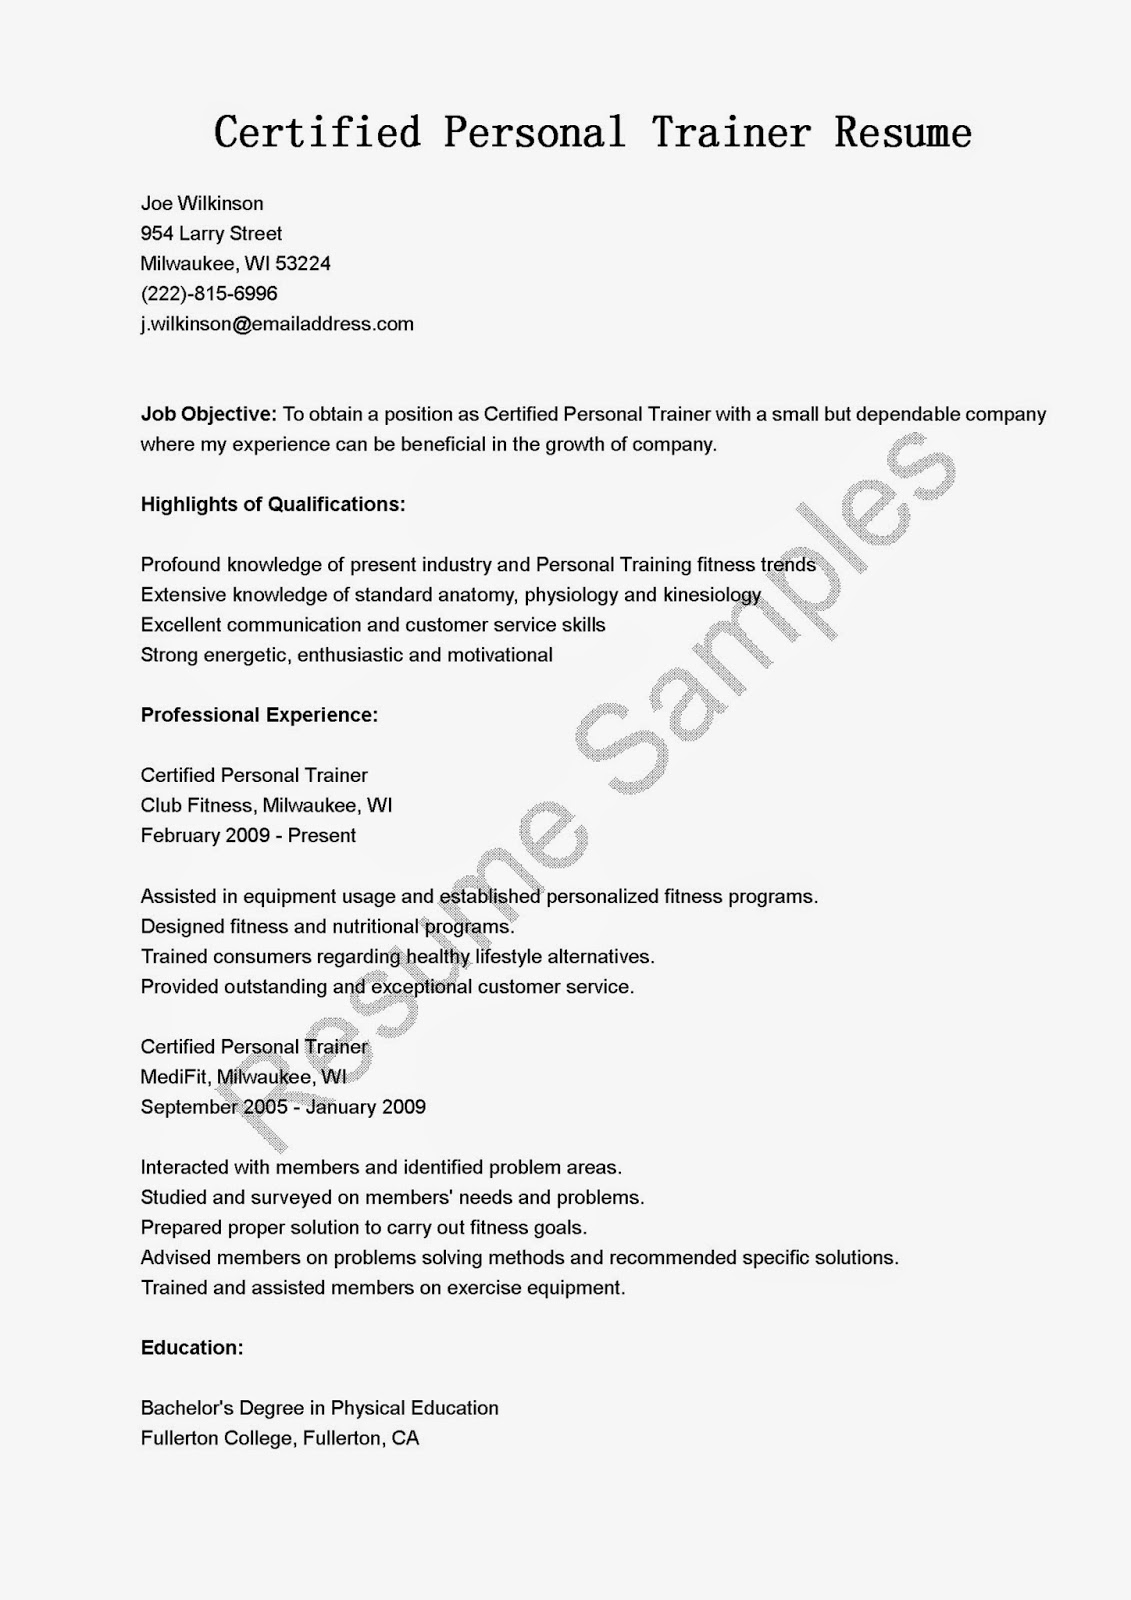 Sample Trainer Resume Resume Samples Certified Personal Trainer Resume Sample